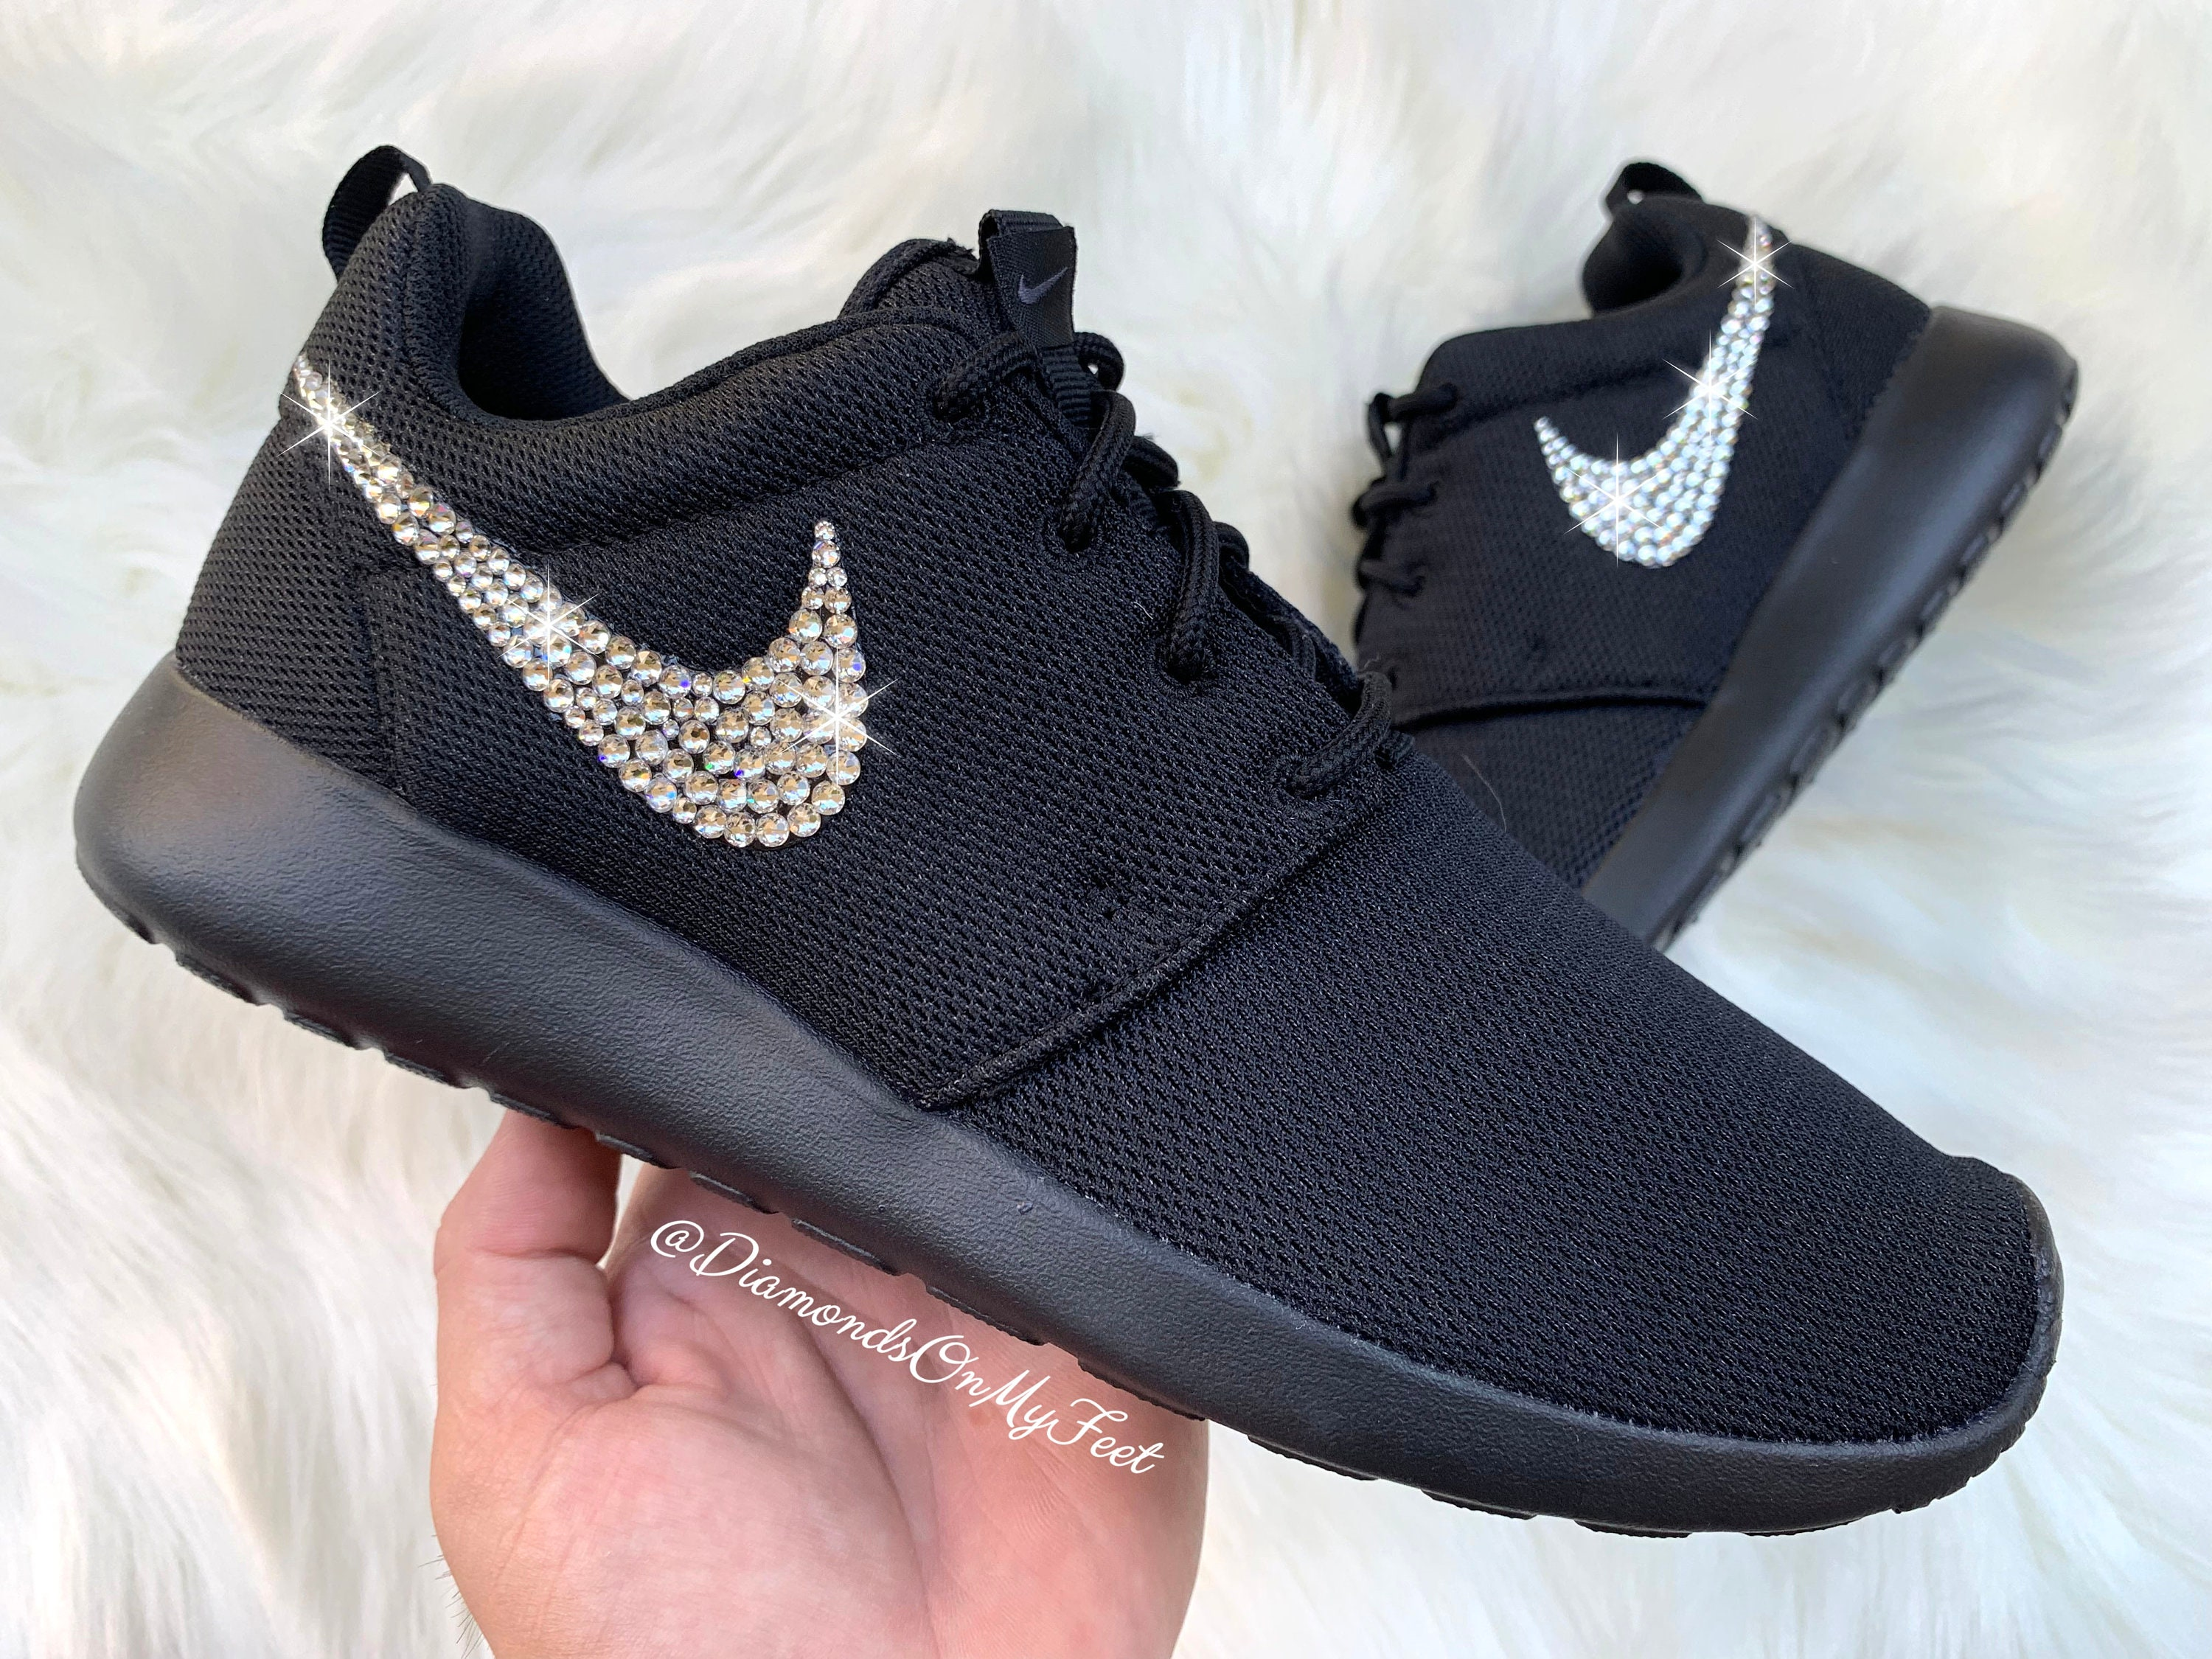 buy popular 6027c d1cf1 Swarovski Women's Nike Roshe Run Roshe One All Black Sneakers Blinged Out  With Authentic Clear Swarovski Crystals Custom Bling Nike Shoes